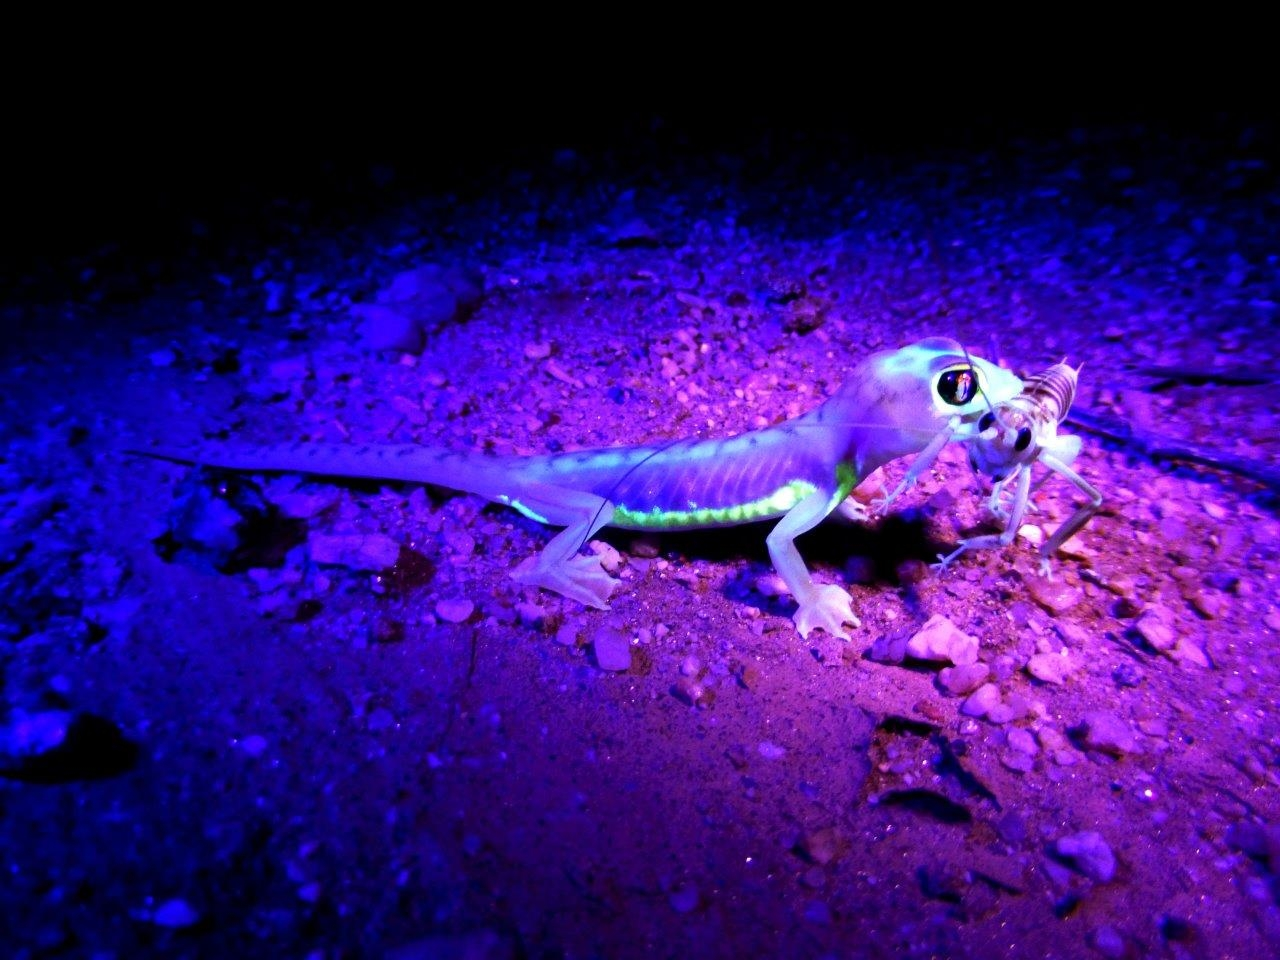 Our Desert Night Walks take you into the gravel plains on Swakopmund's outskirts. Exciting nocturnal animals that we find here include spiders, geckos, scorpions, snakes, gerbils and with great luck a Brown Hyena. This Namib Web-footed Gecko is a popular find.